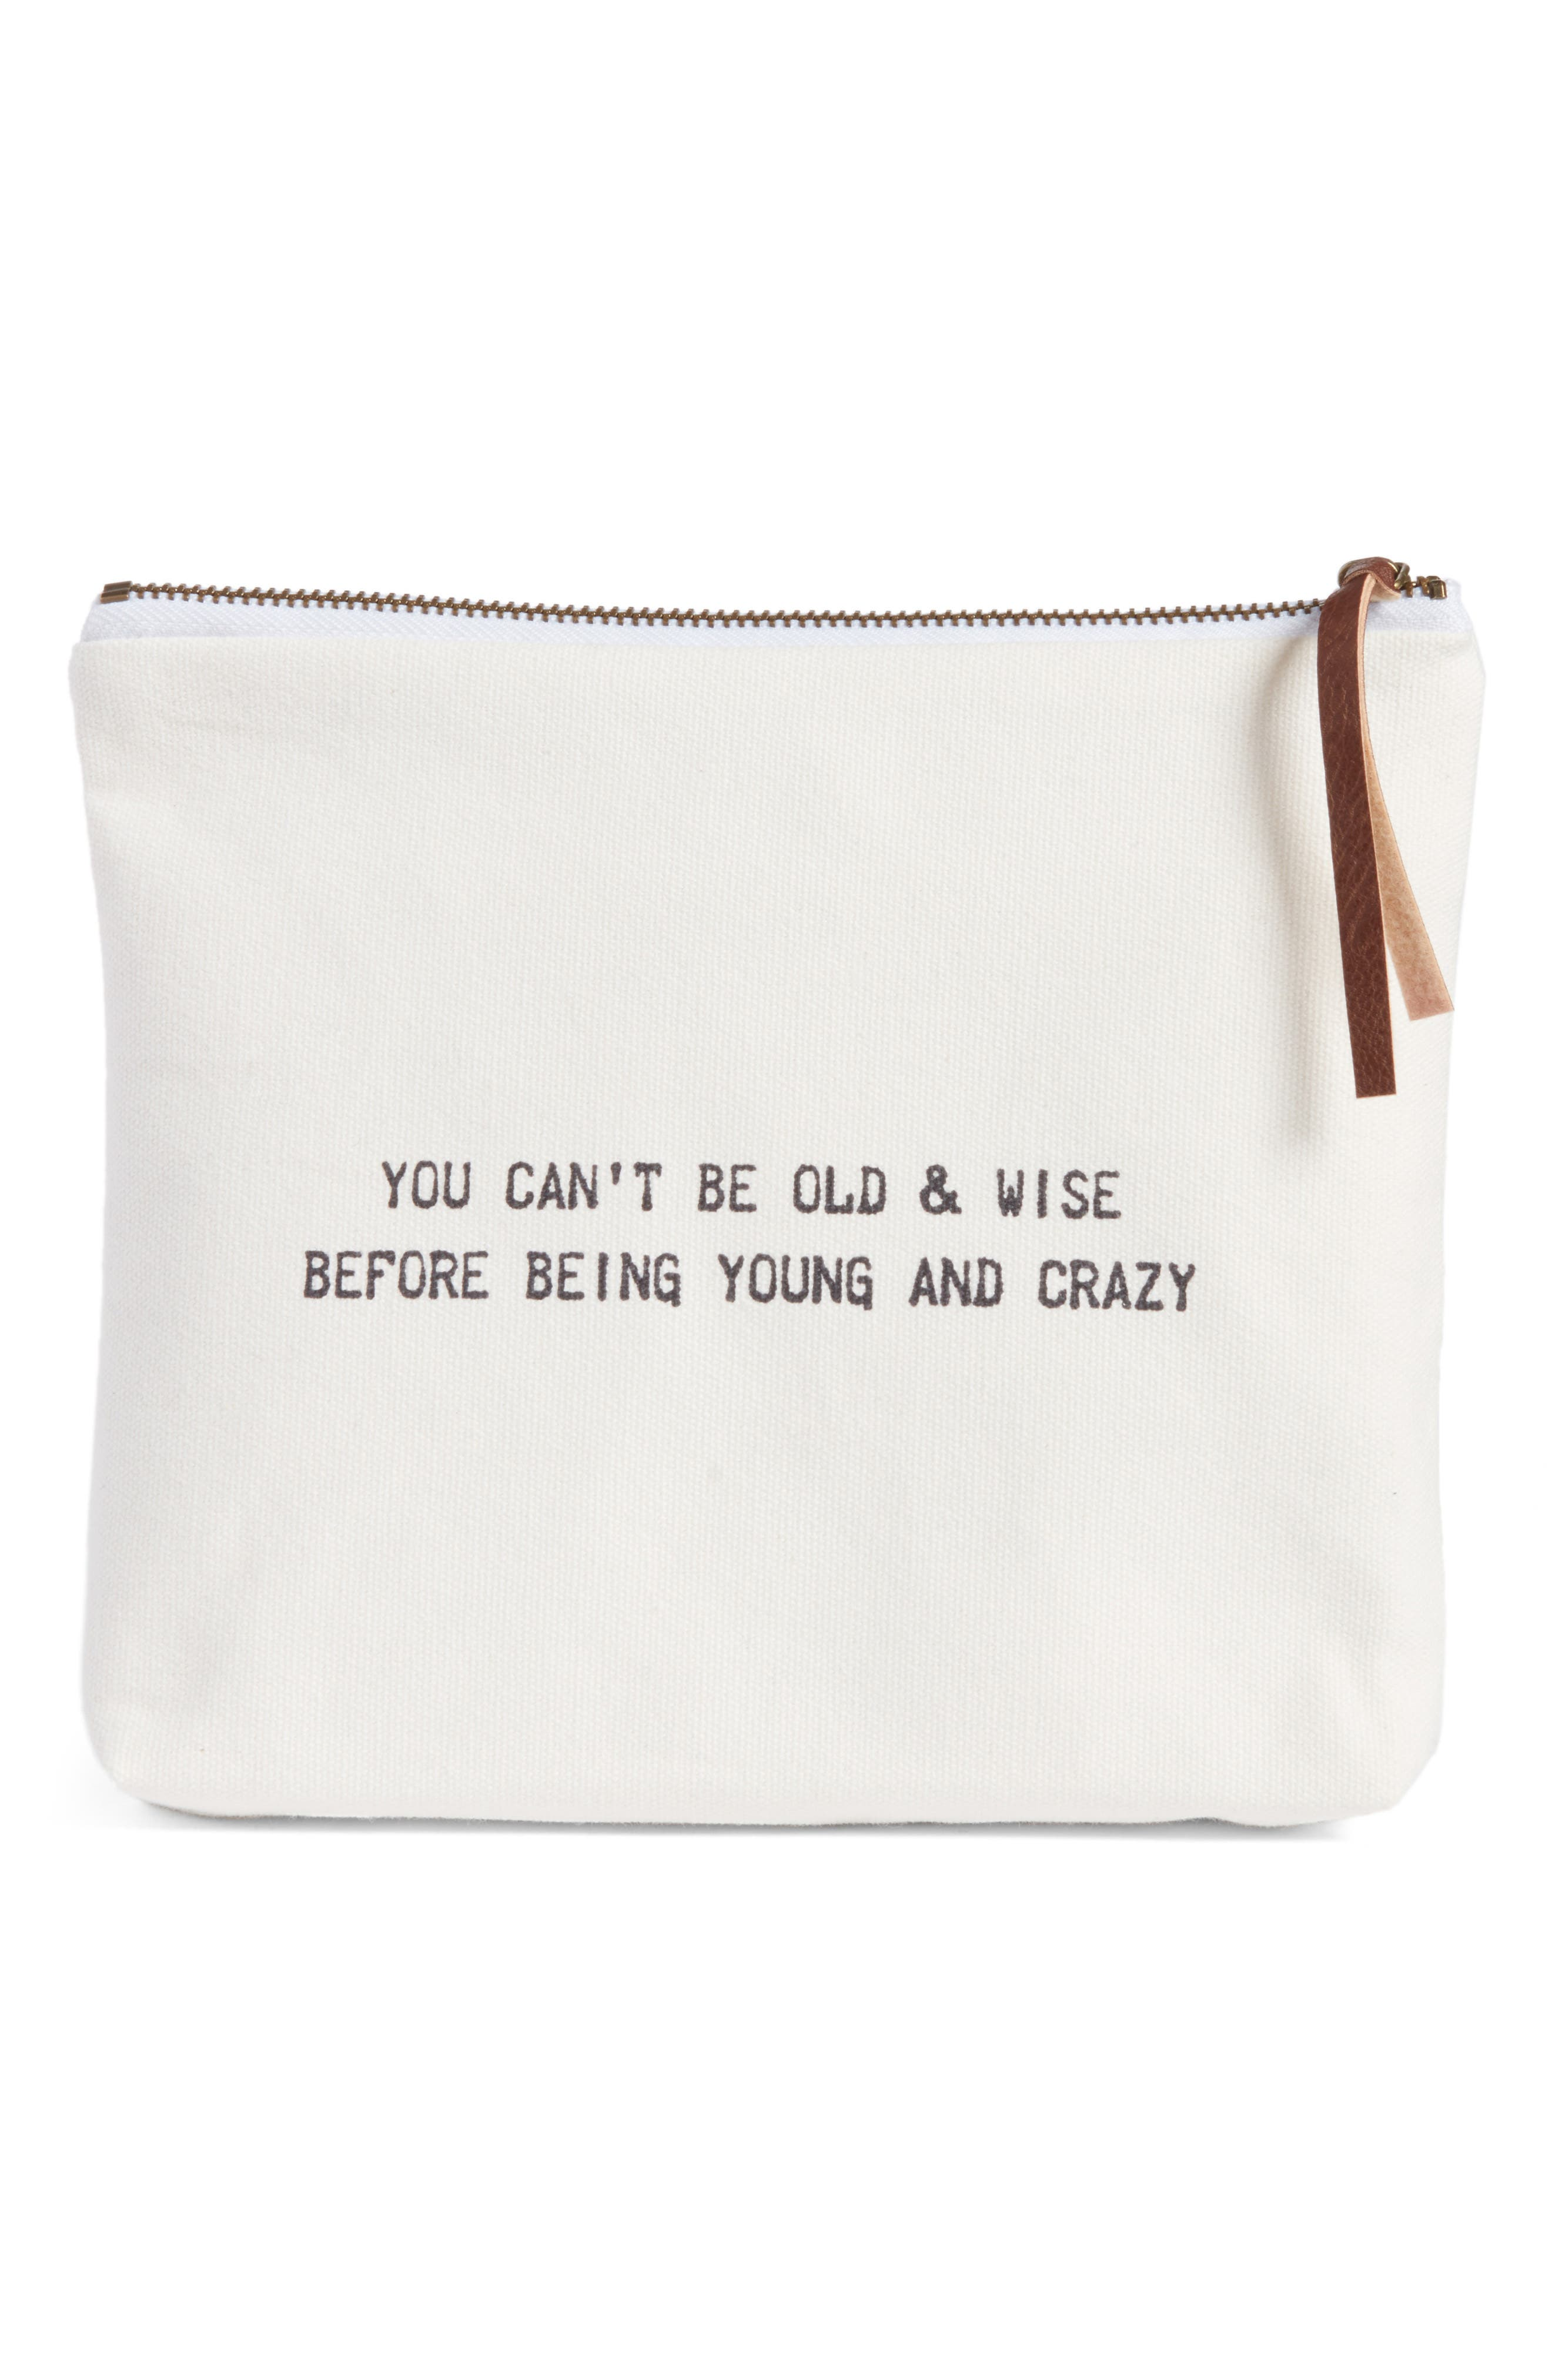 Old & Wise Before Young & Crazy Zip Top Accessory Bag,                             Main thumbnail 1, color,                             900